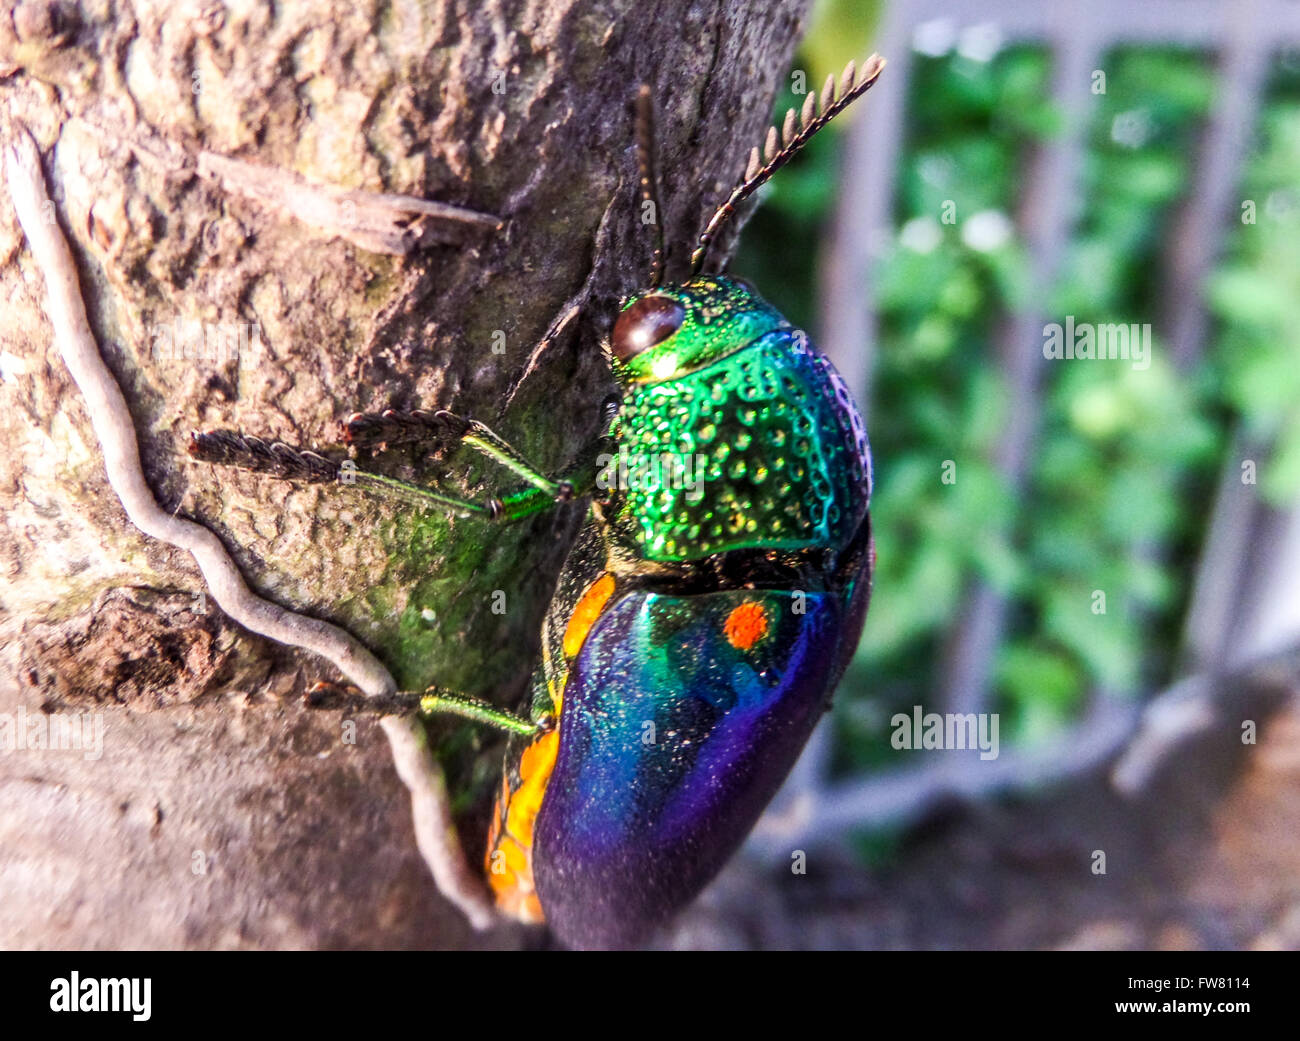 Buprestidae is a family of beetles known as jewel beetles or metallic wood-boring beetles because of their glossy - Stock Image